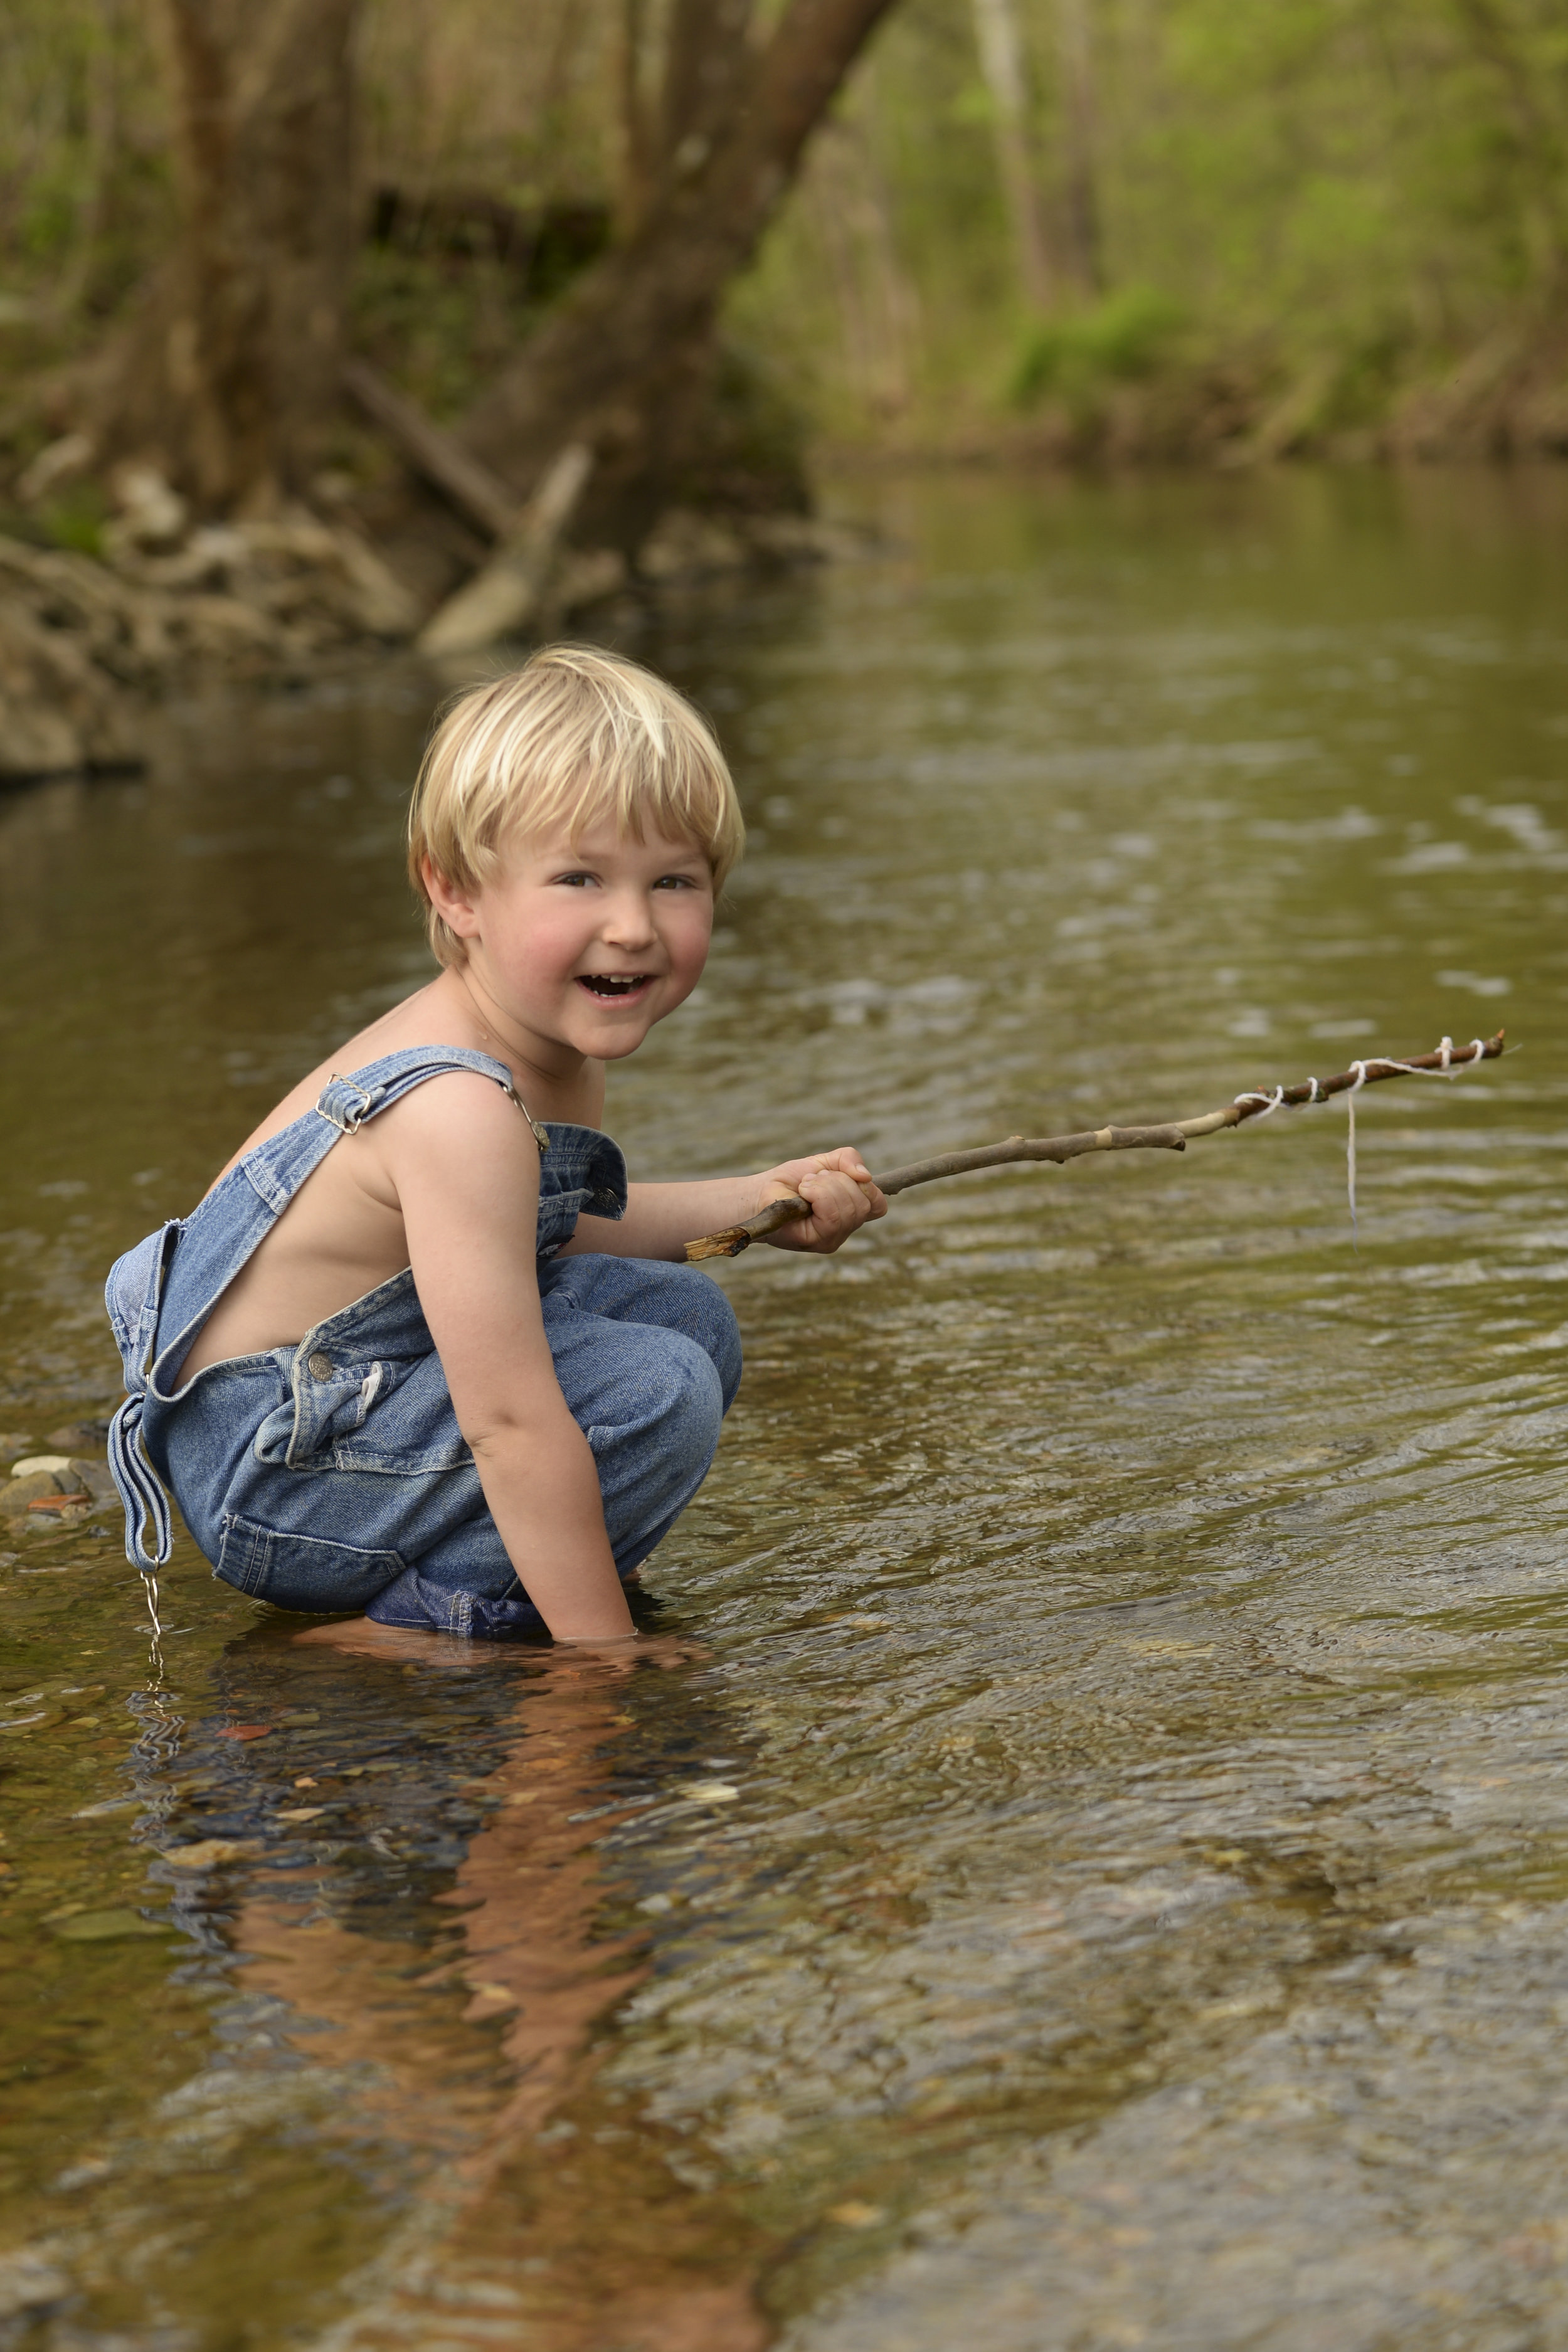 Huck Finn Sessions - perfect for parents looking to capture the un-posed and innocent moments of childhood!